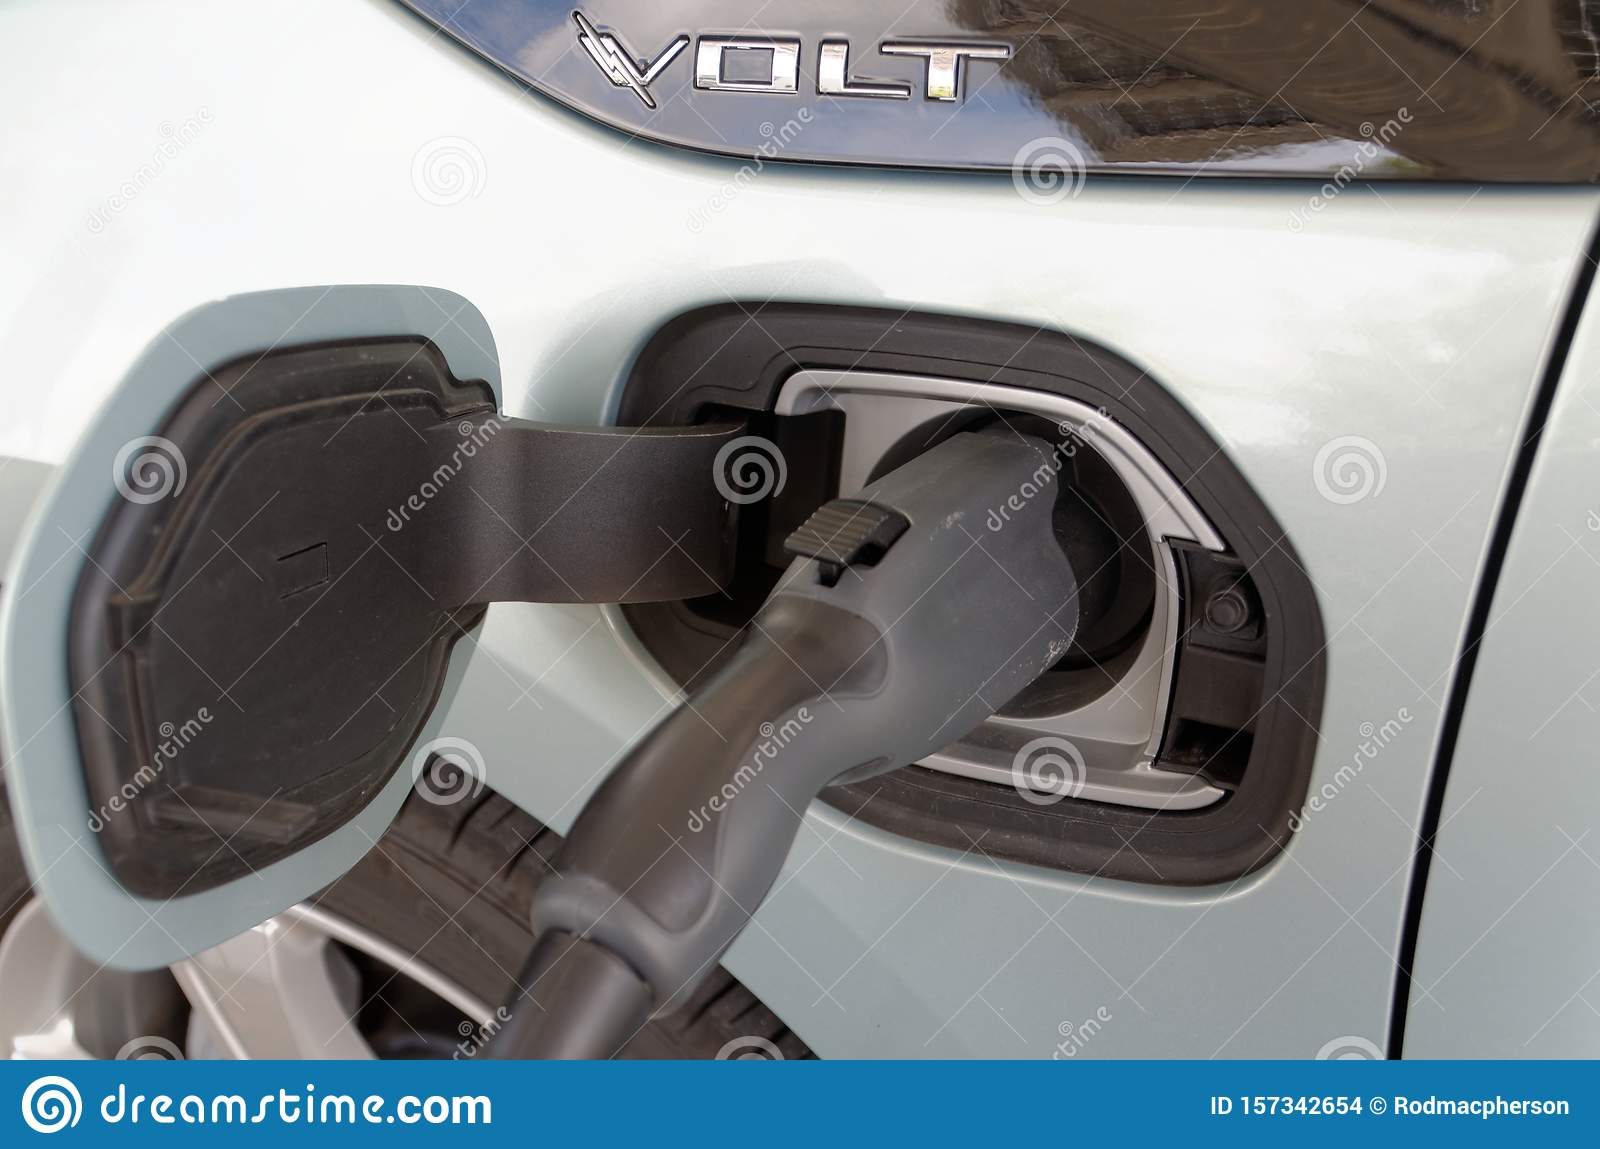 Chevy Volt Battery >> Chevy Volt Charges Its Battery Editorial Stock Image Image